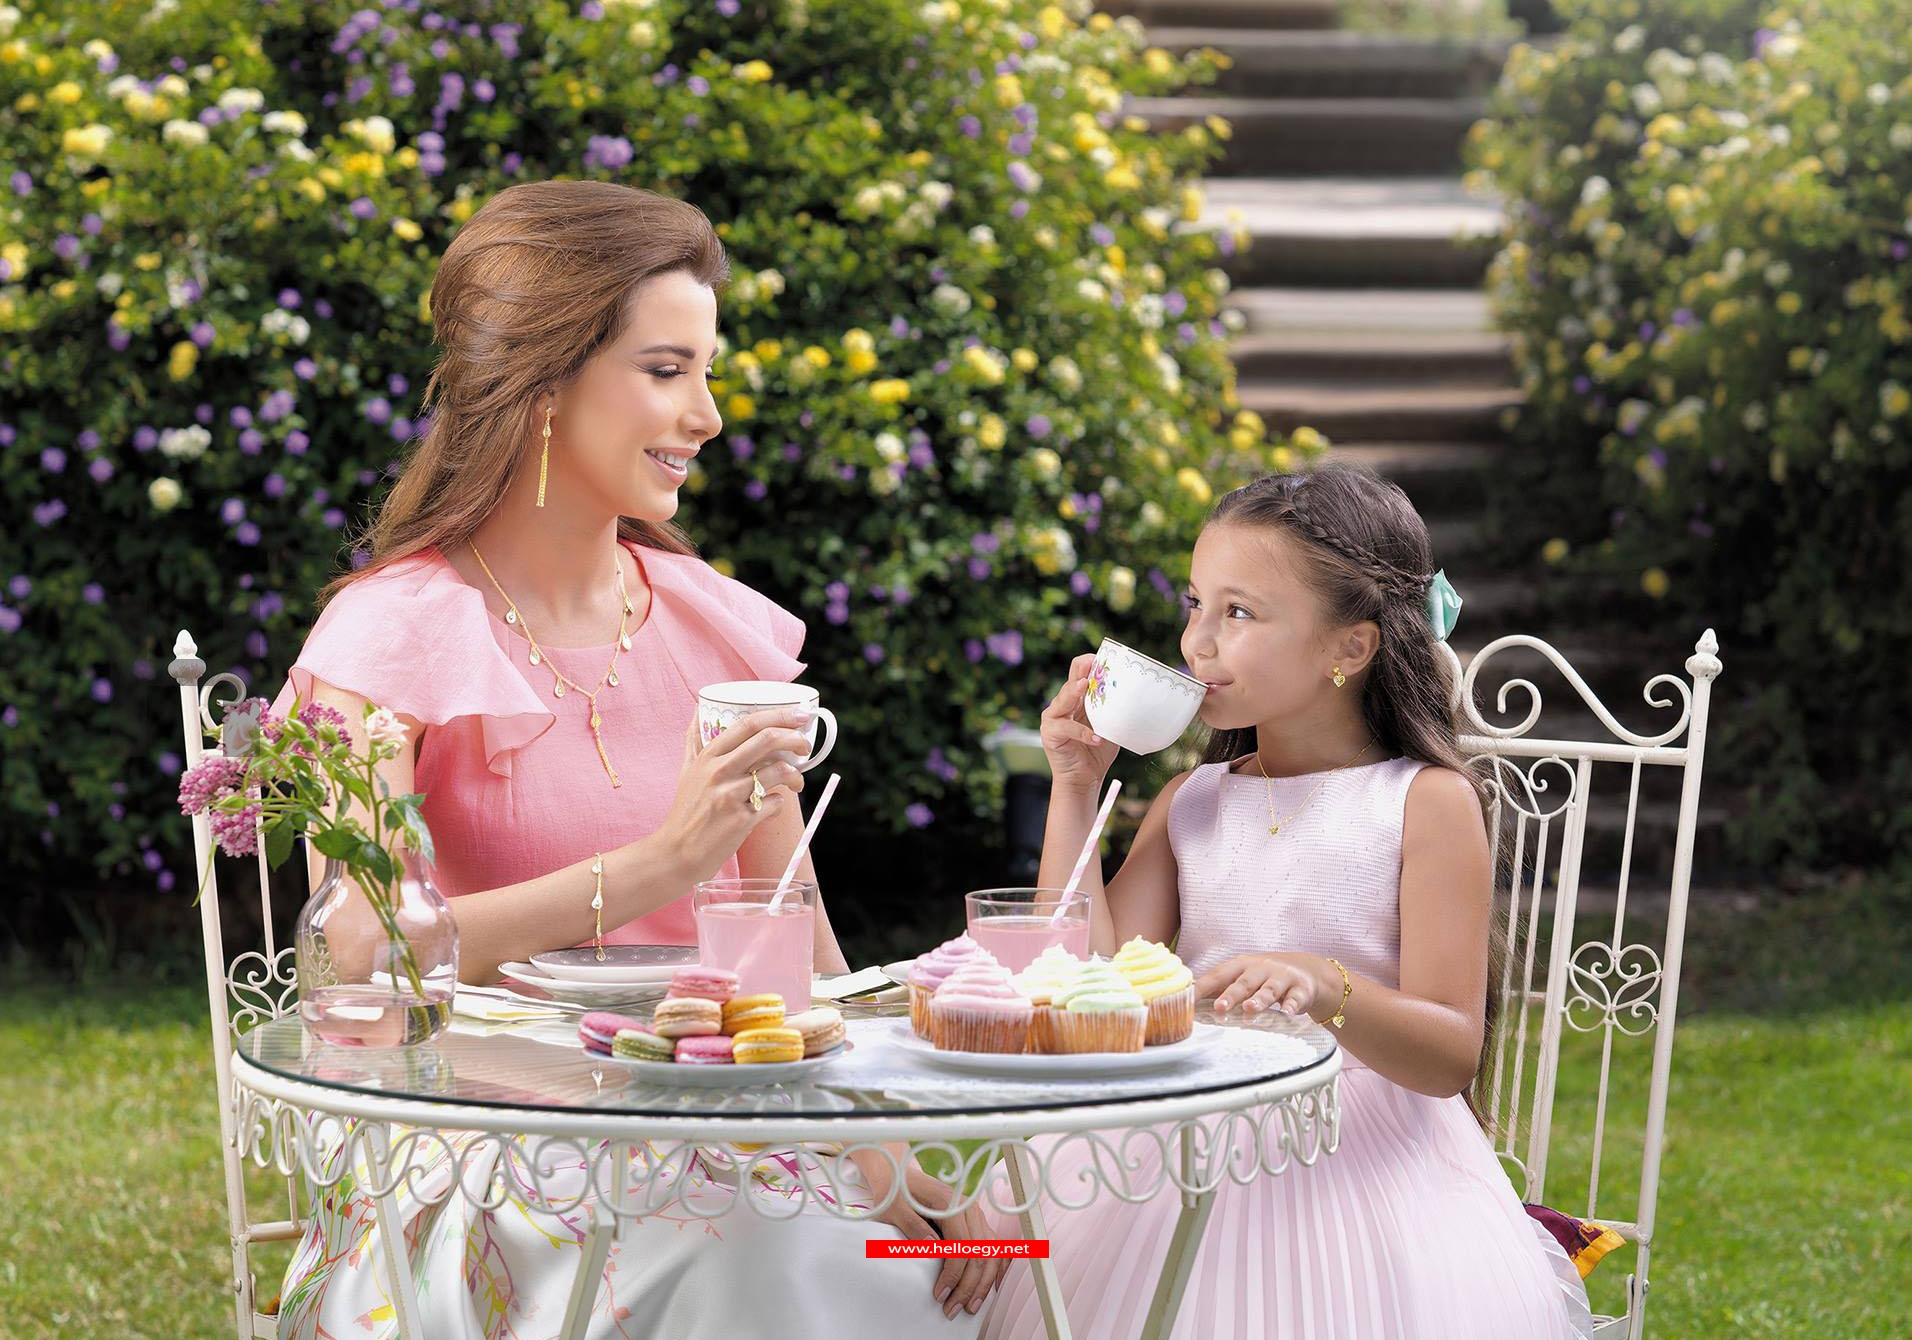 Nancy Ajram designs Jewelry for Children